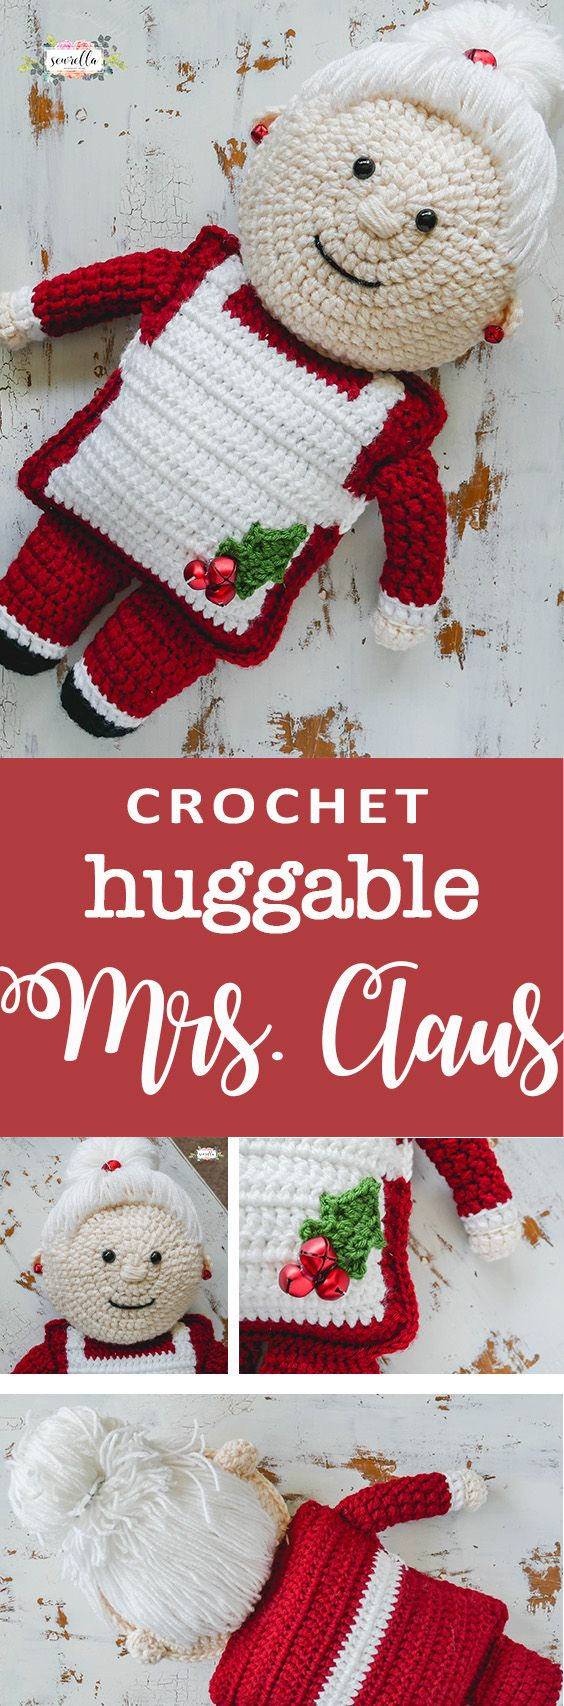 Crochet a Mrs. Claus huggable friend this Christmas with this free pattern!